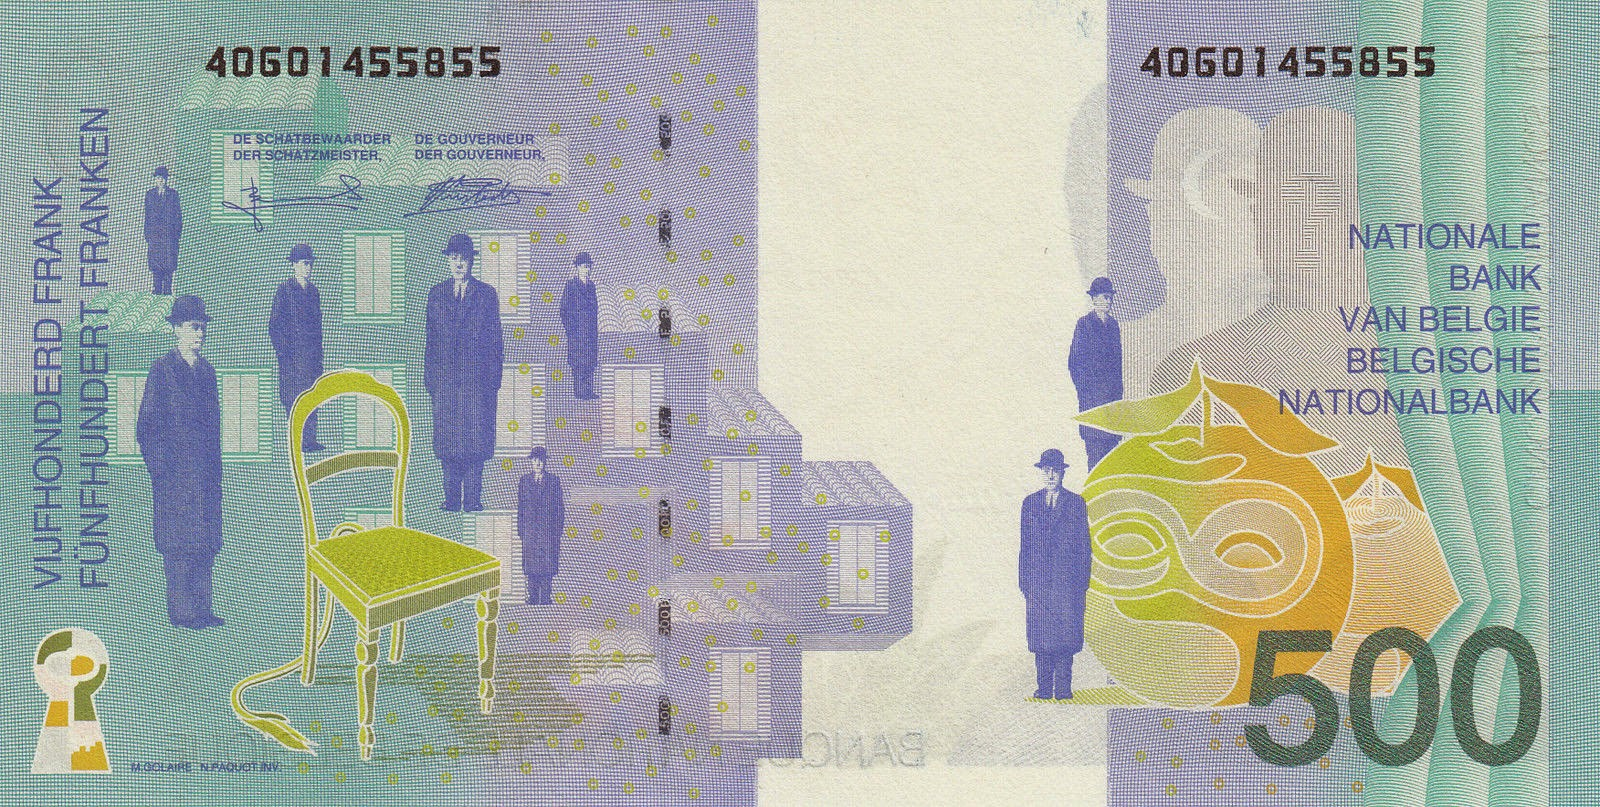 Belgium Money Currency 500 Belgian Francs banknote 1998 Rene Magritte Paintings